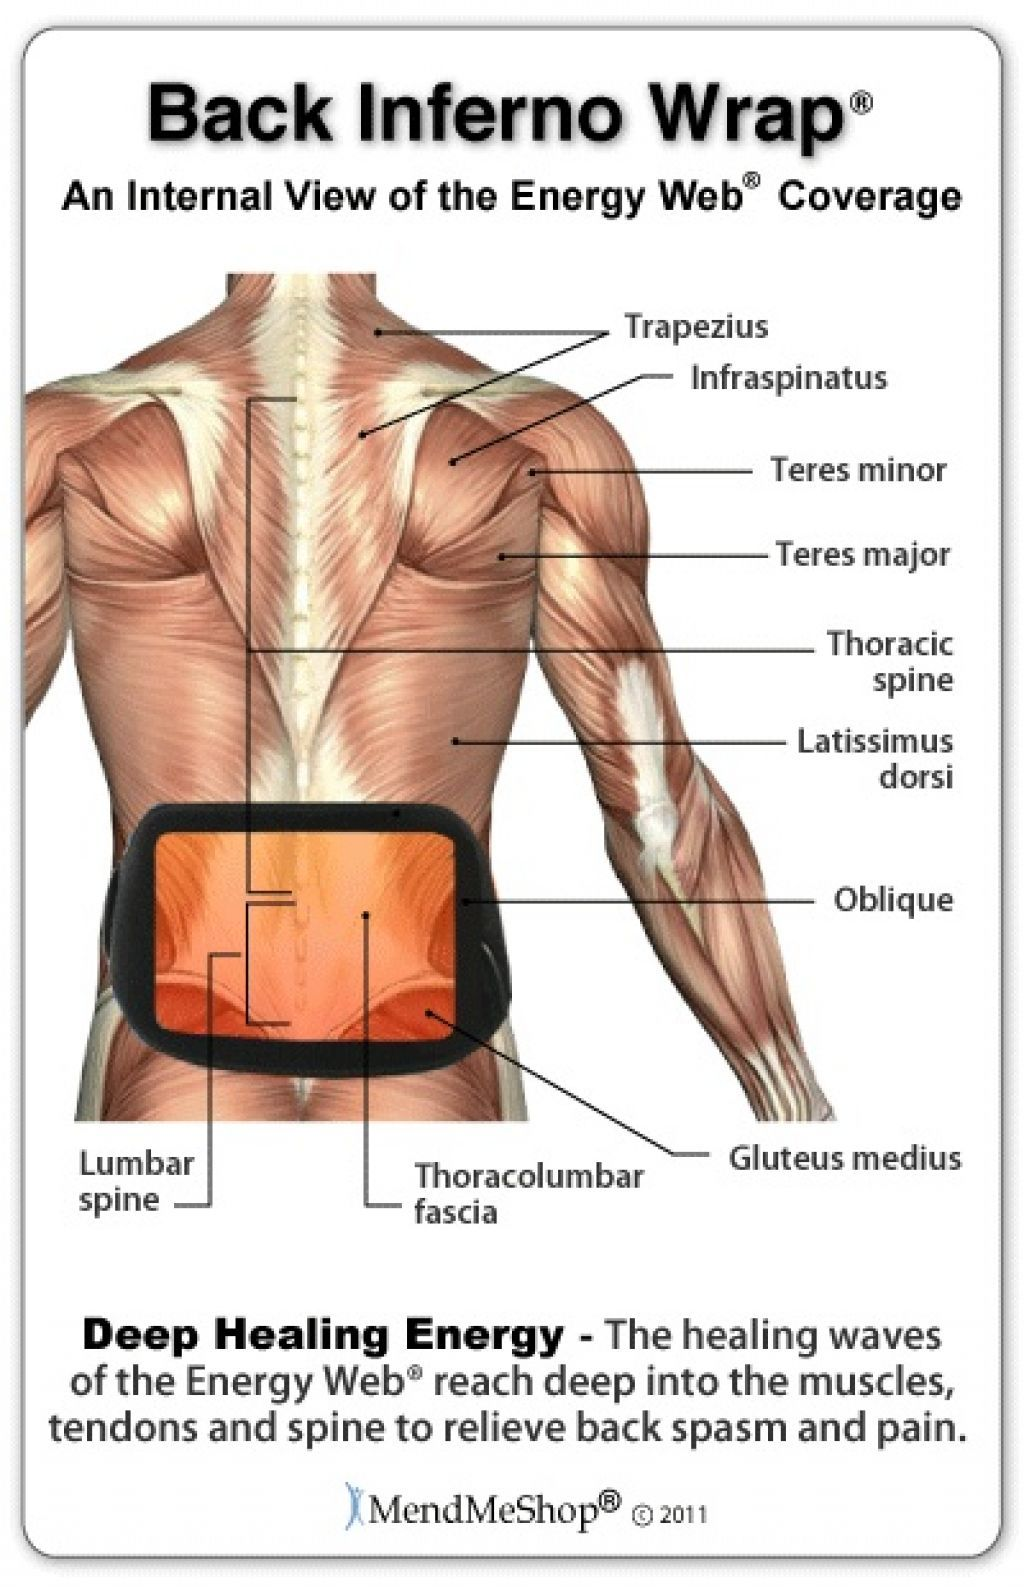 lower back muscles photo lower back muscles image lower back muscles gallery [ 1024 x 1587 Pixel ]